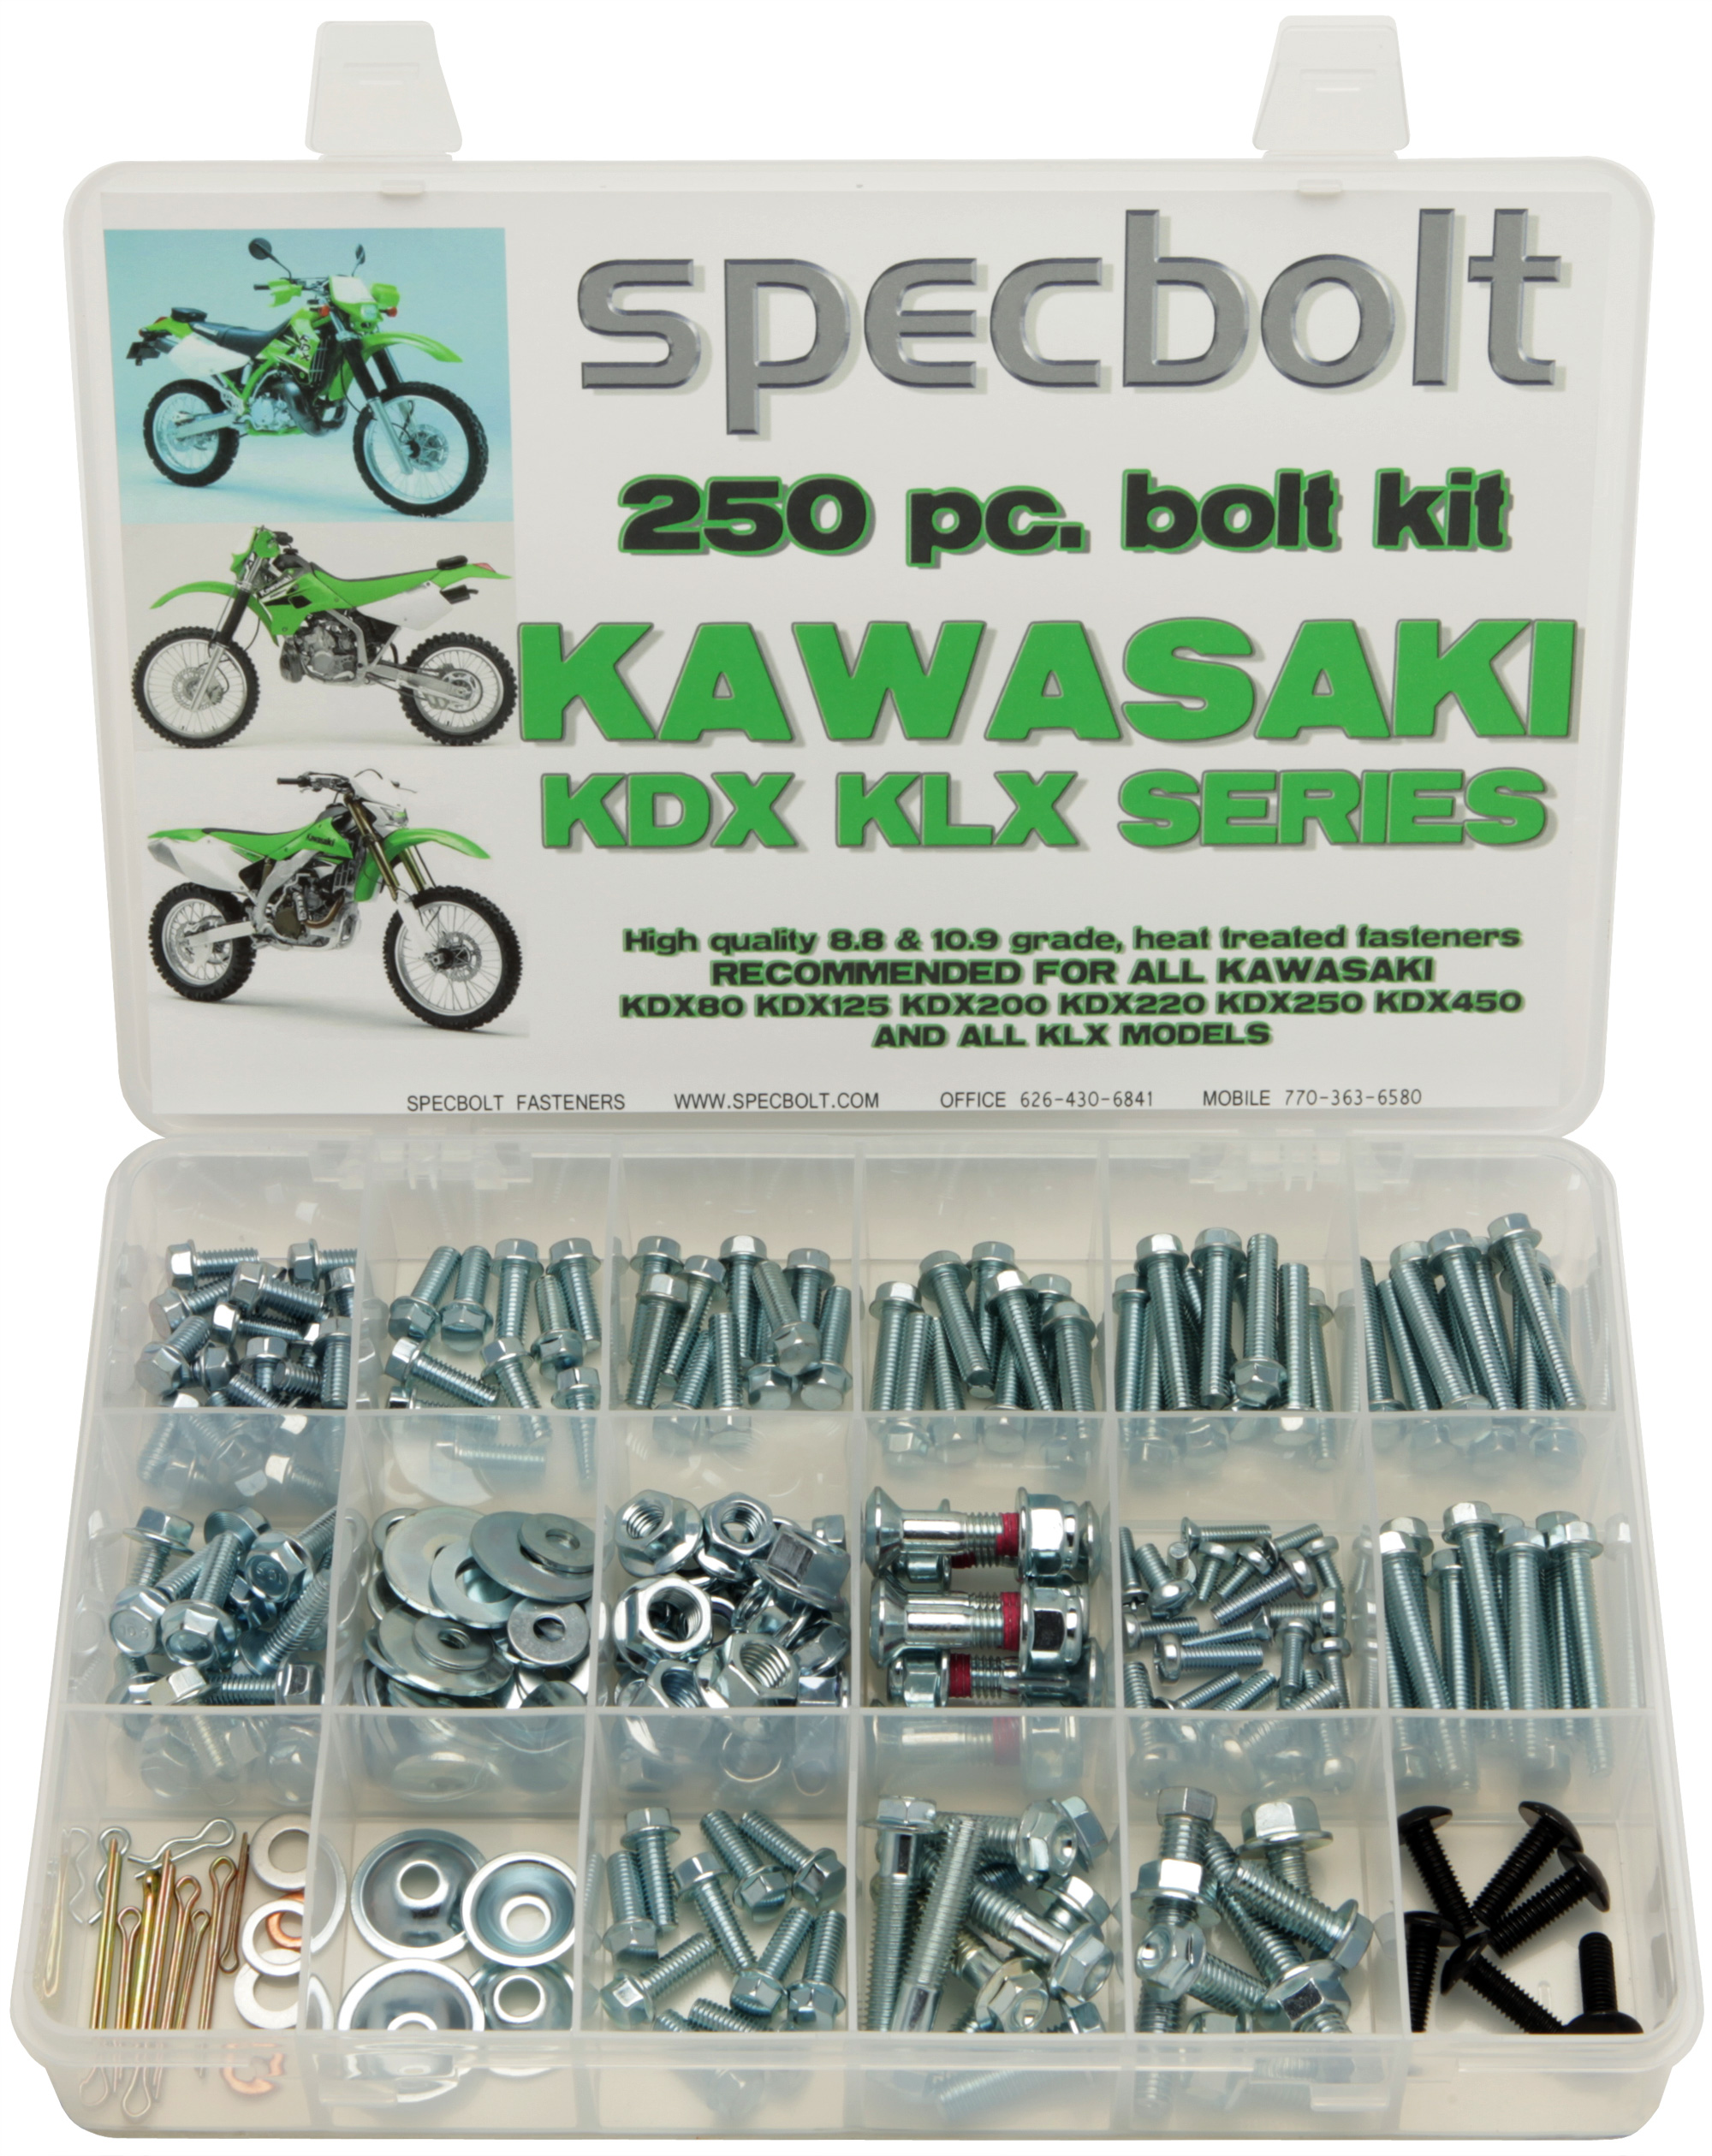 250 Piece Kawasaki Kdx 50 80 175 200 220 225 Klx Klr Specbolt Wiring Harness The Kit Is Designed To Help You Maintain And Restore Your Kdx175 Kdx200 Kdx220 Kdx225 Kdx250 Using Only